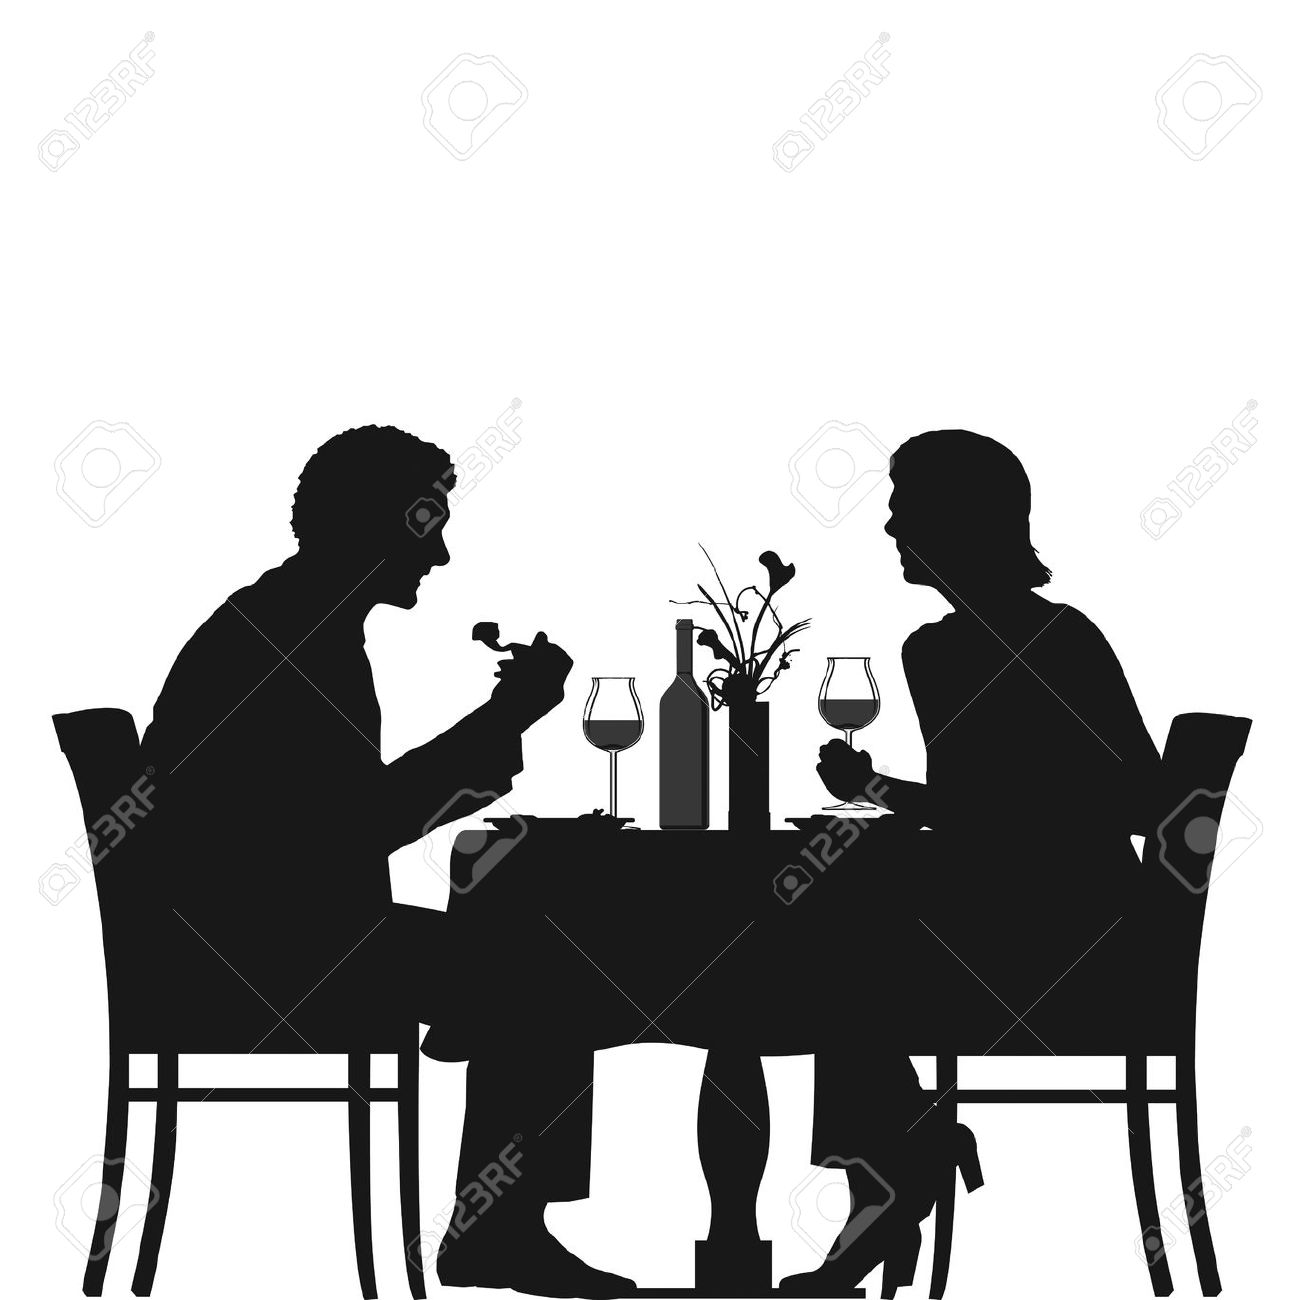 Eat dinner candlelight clipart black and white.